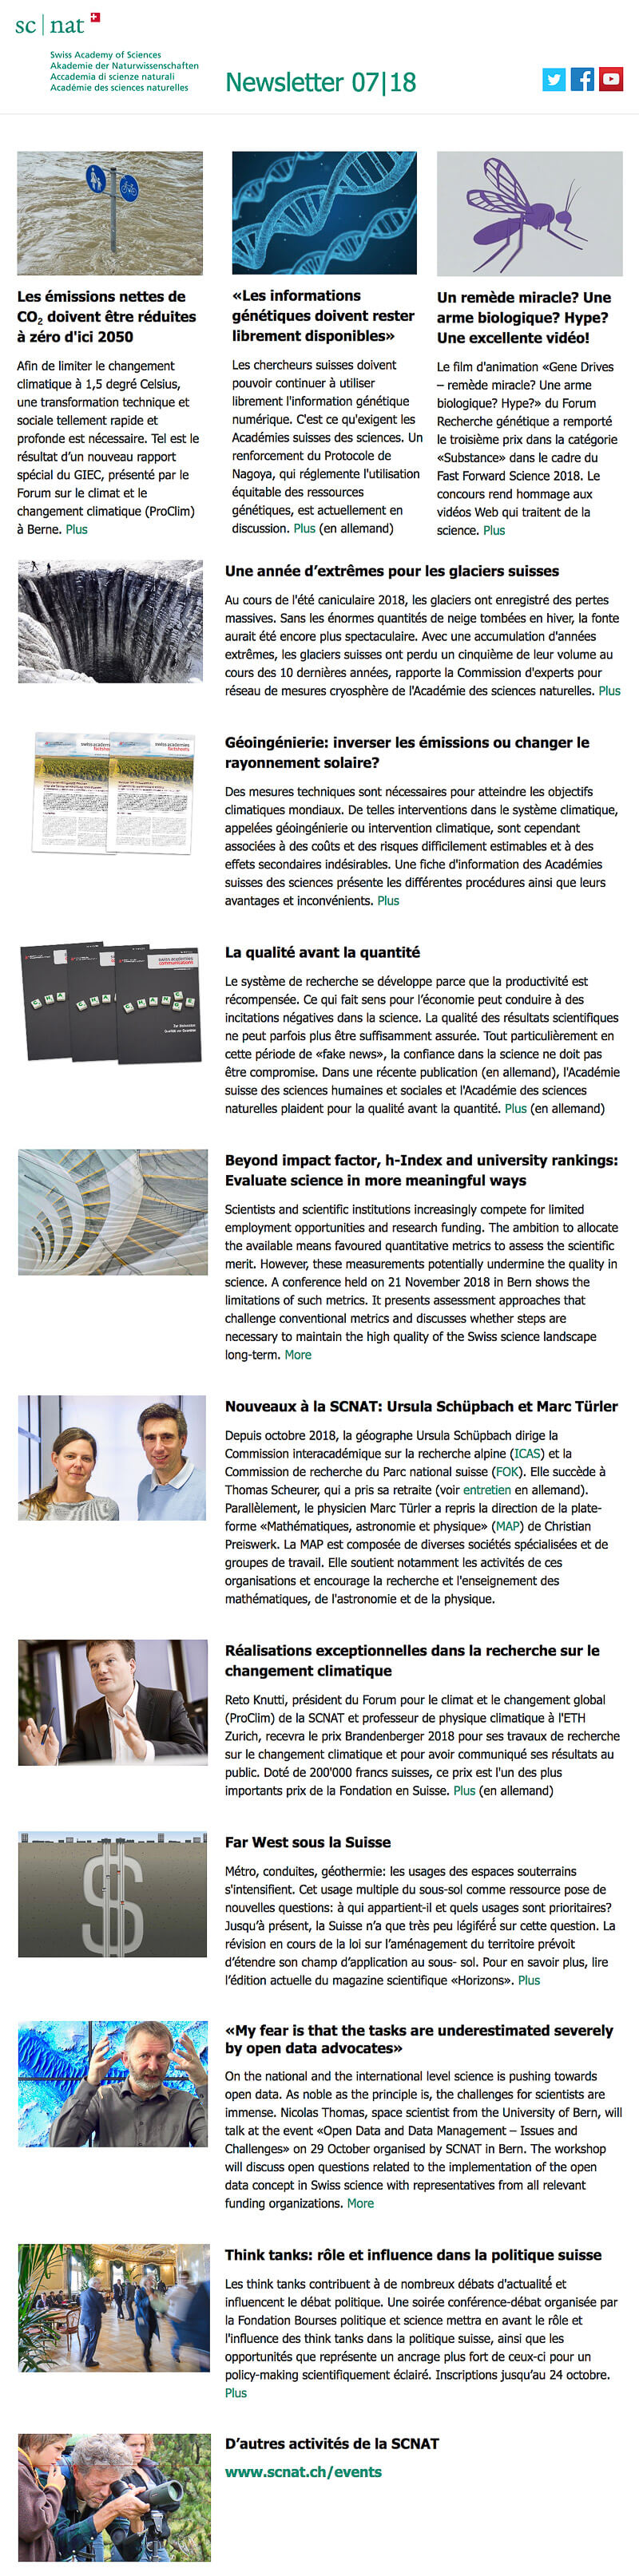 Newsletter Sciences naturelles Suisse